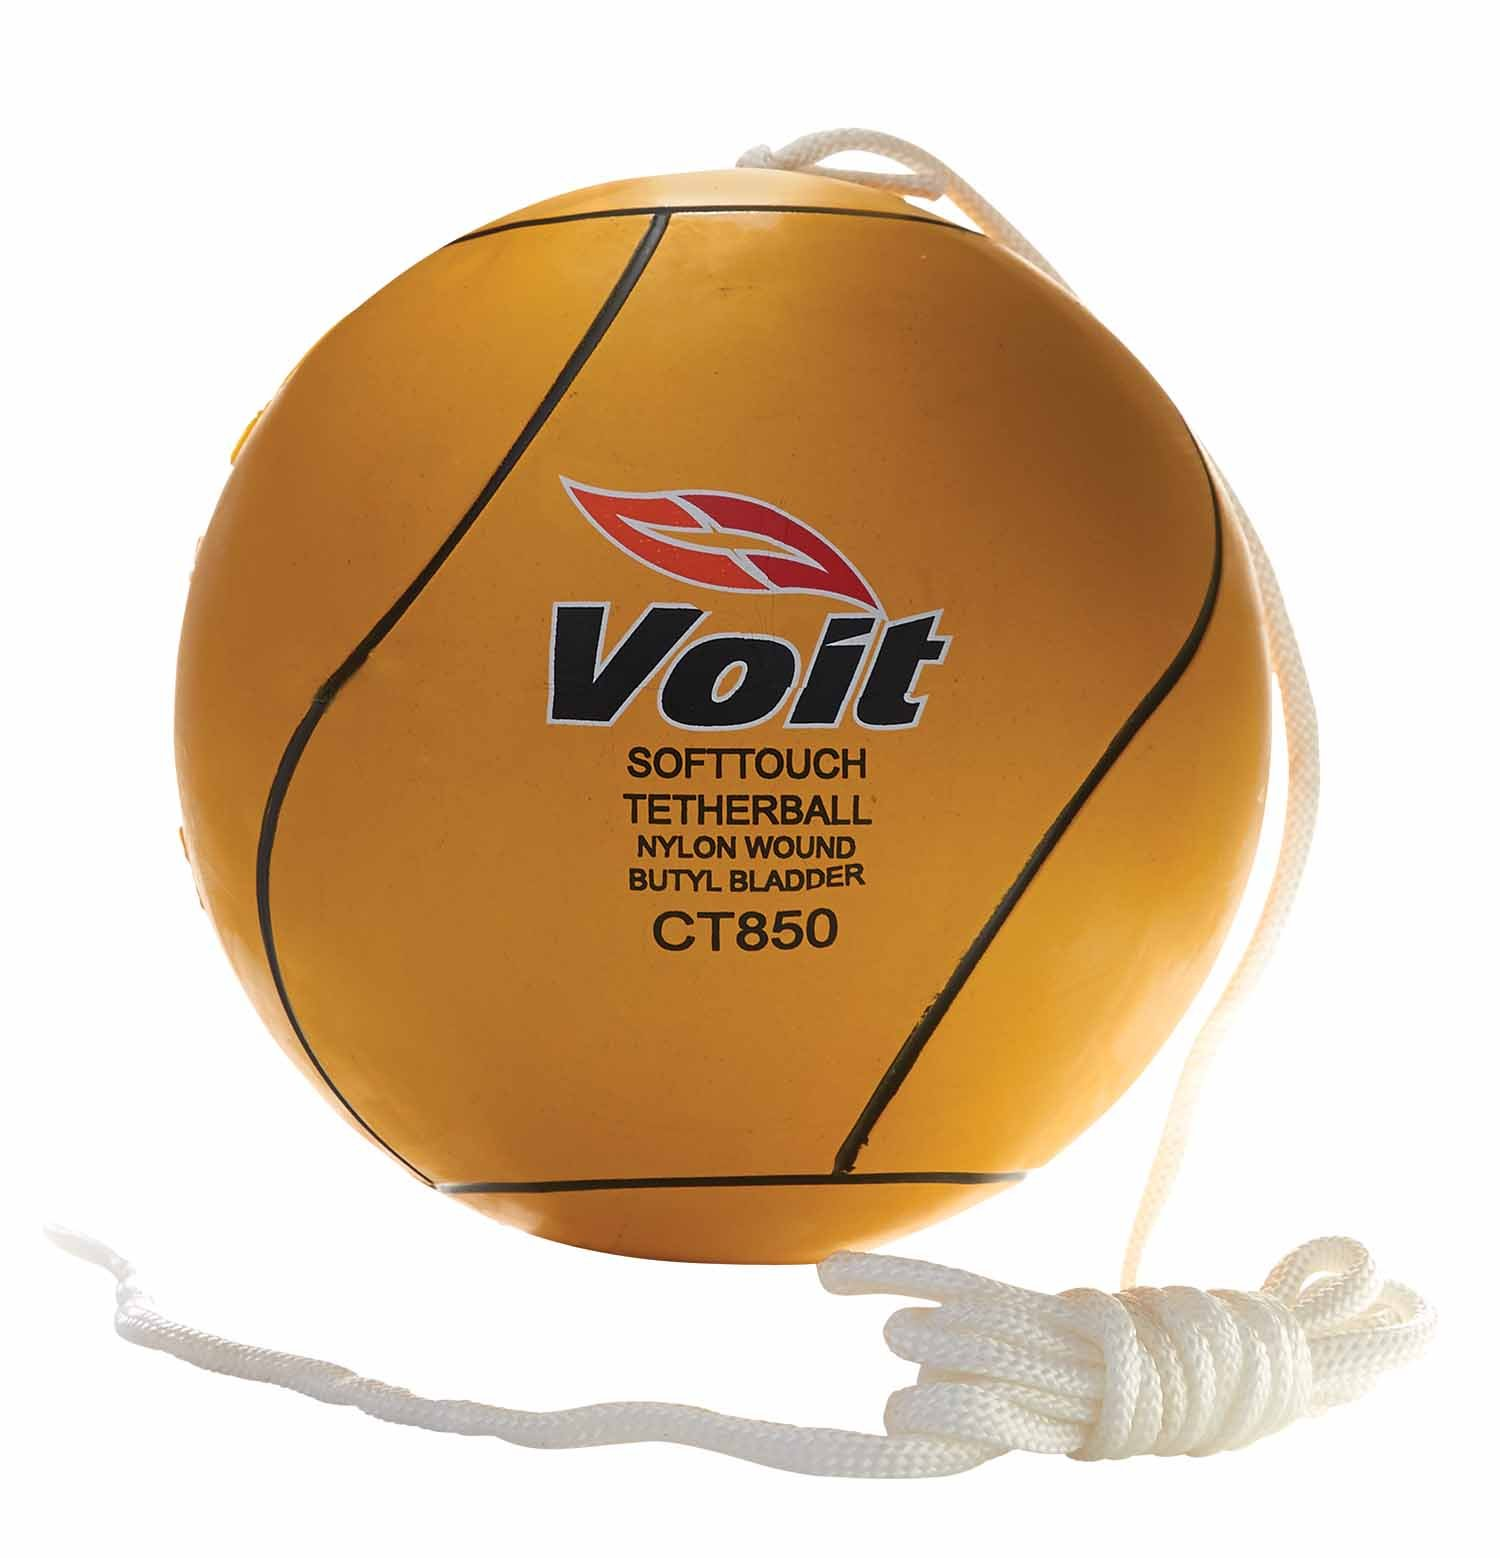 Voit Tetherball Soft Touch Cover by Voit